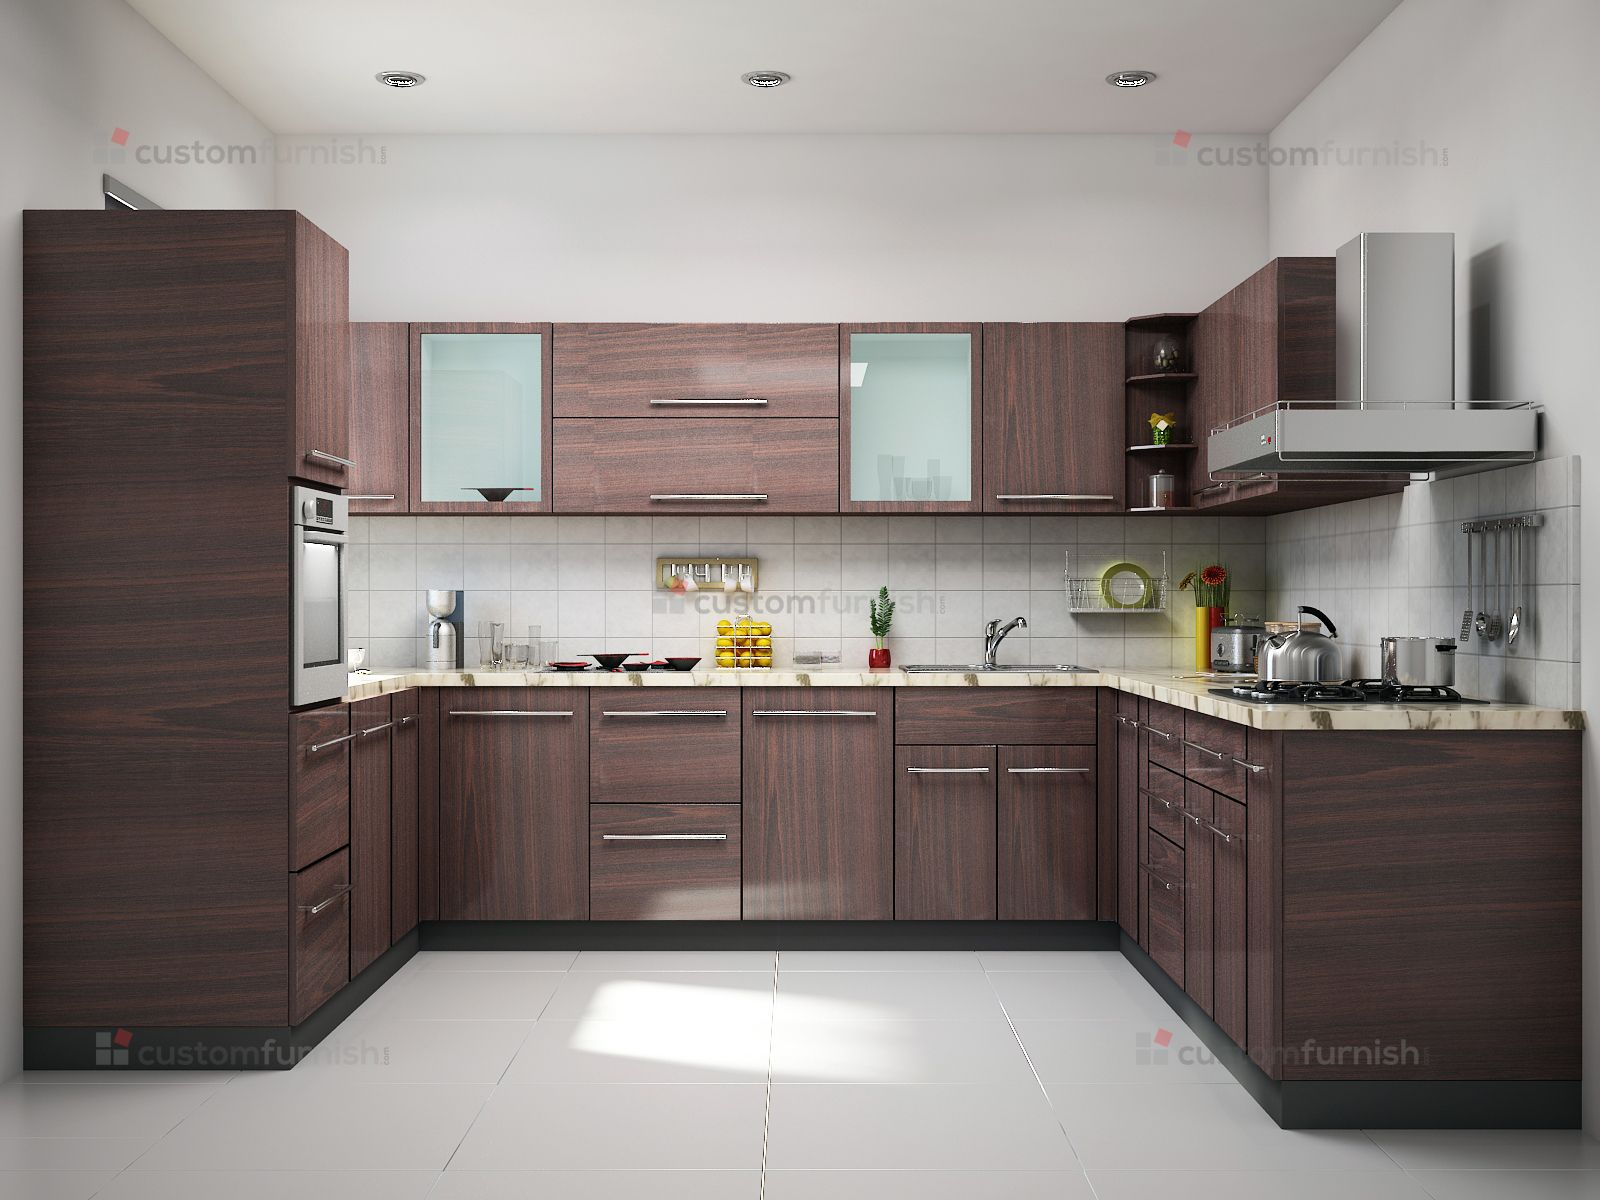 brown u shaped kitchen design kitchen furniture design kitchen remodel small kitchen design on u kitchen interior id=42723